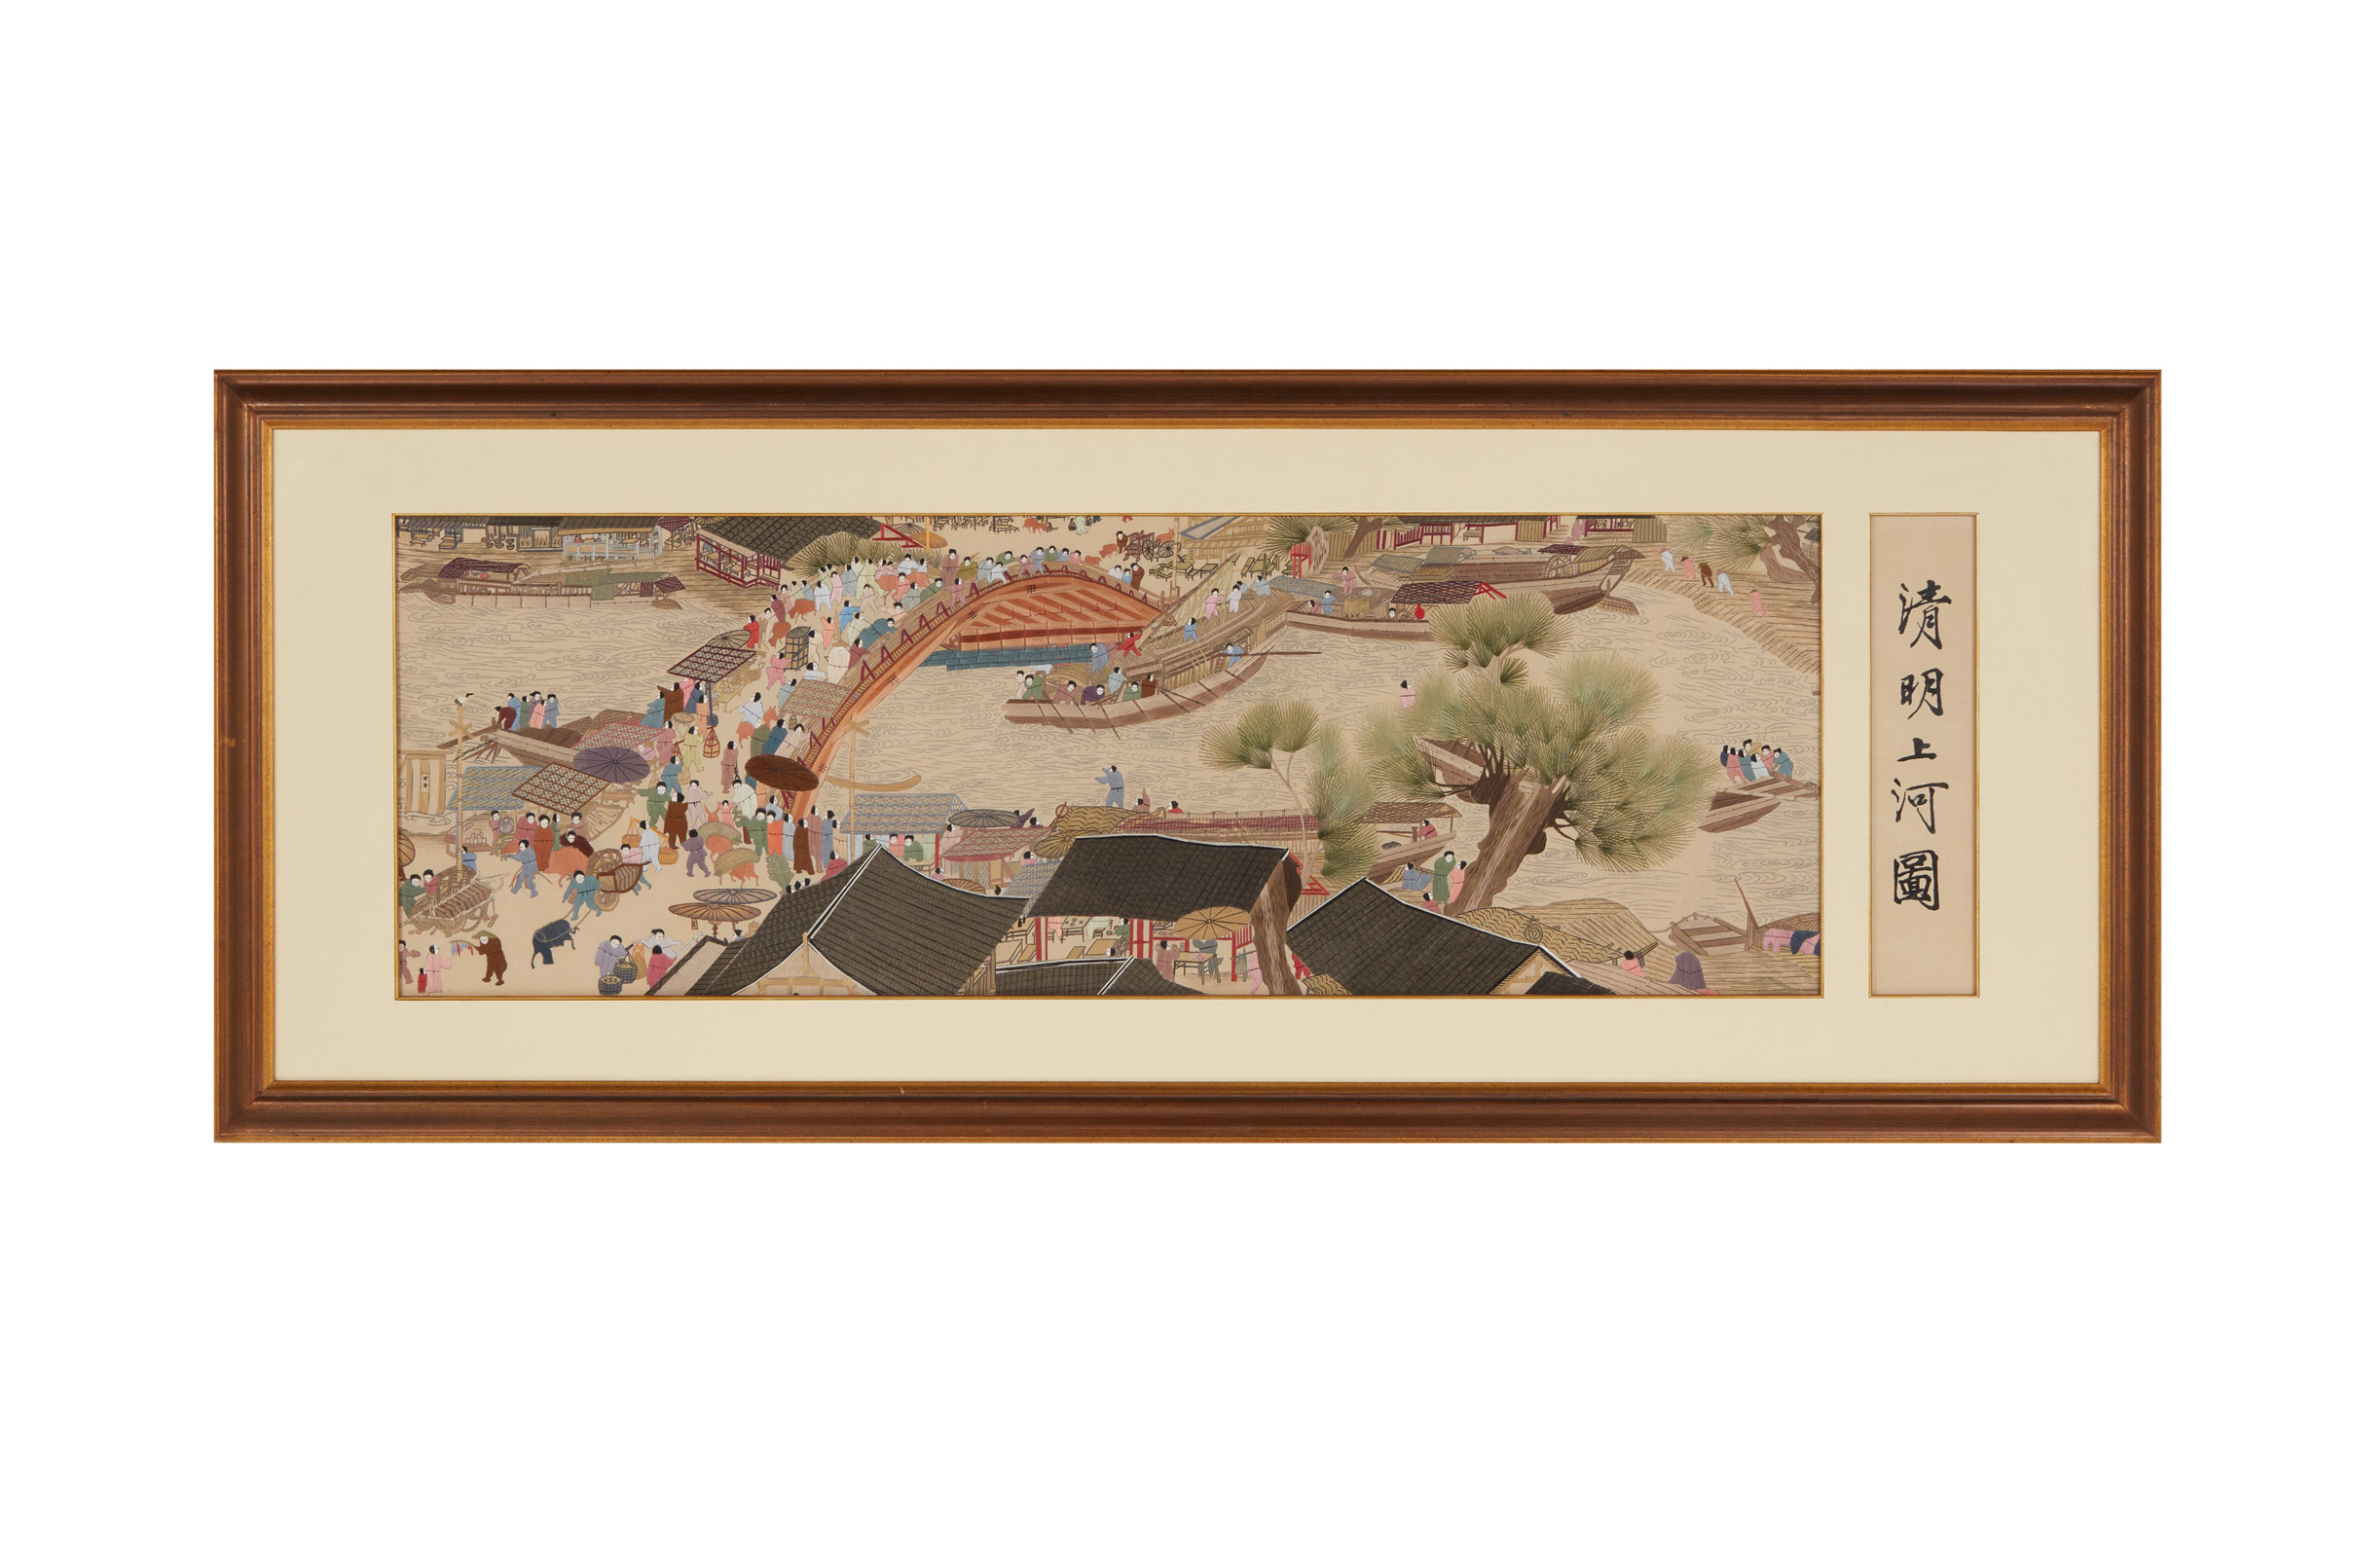 Lot 35 - A LARGE EMBROIDERED PICTURE AFTER 'QINGMING SHANGHE TU'